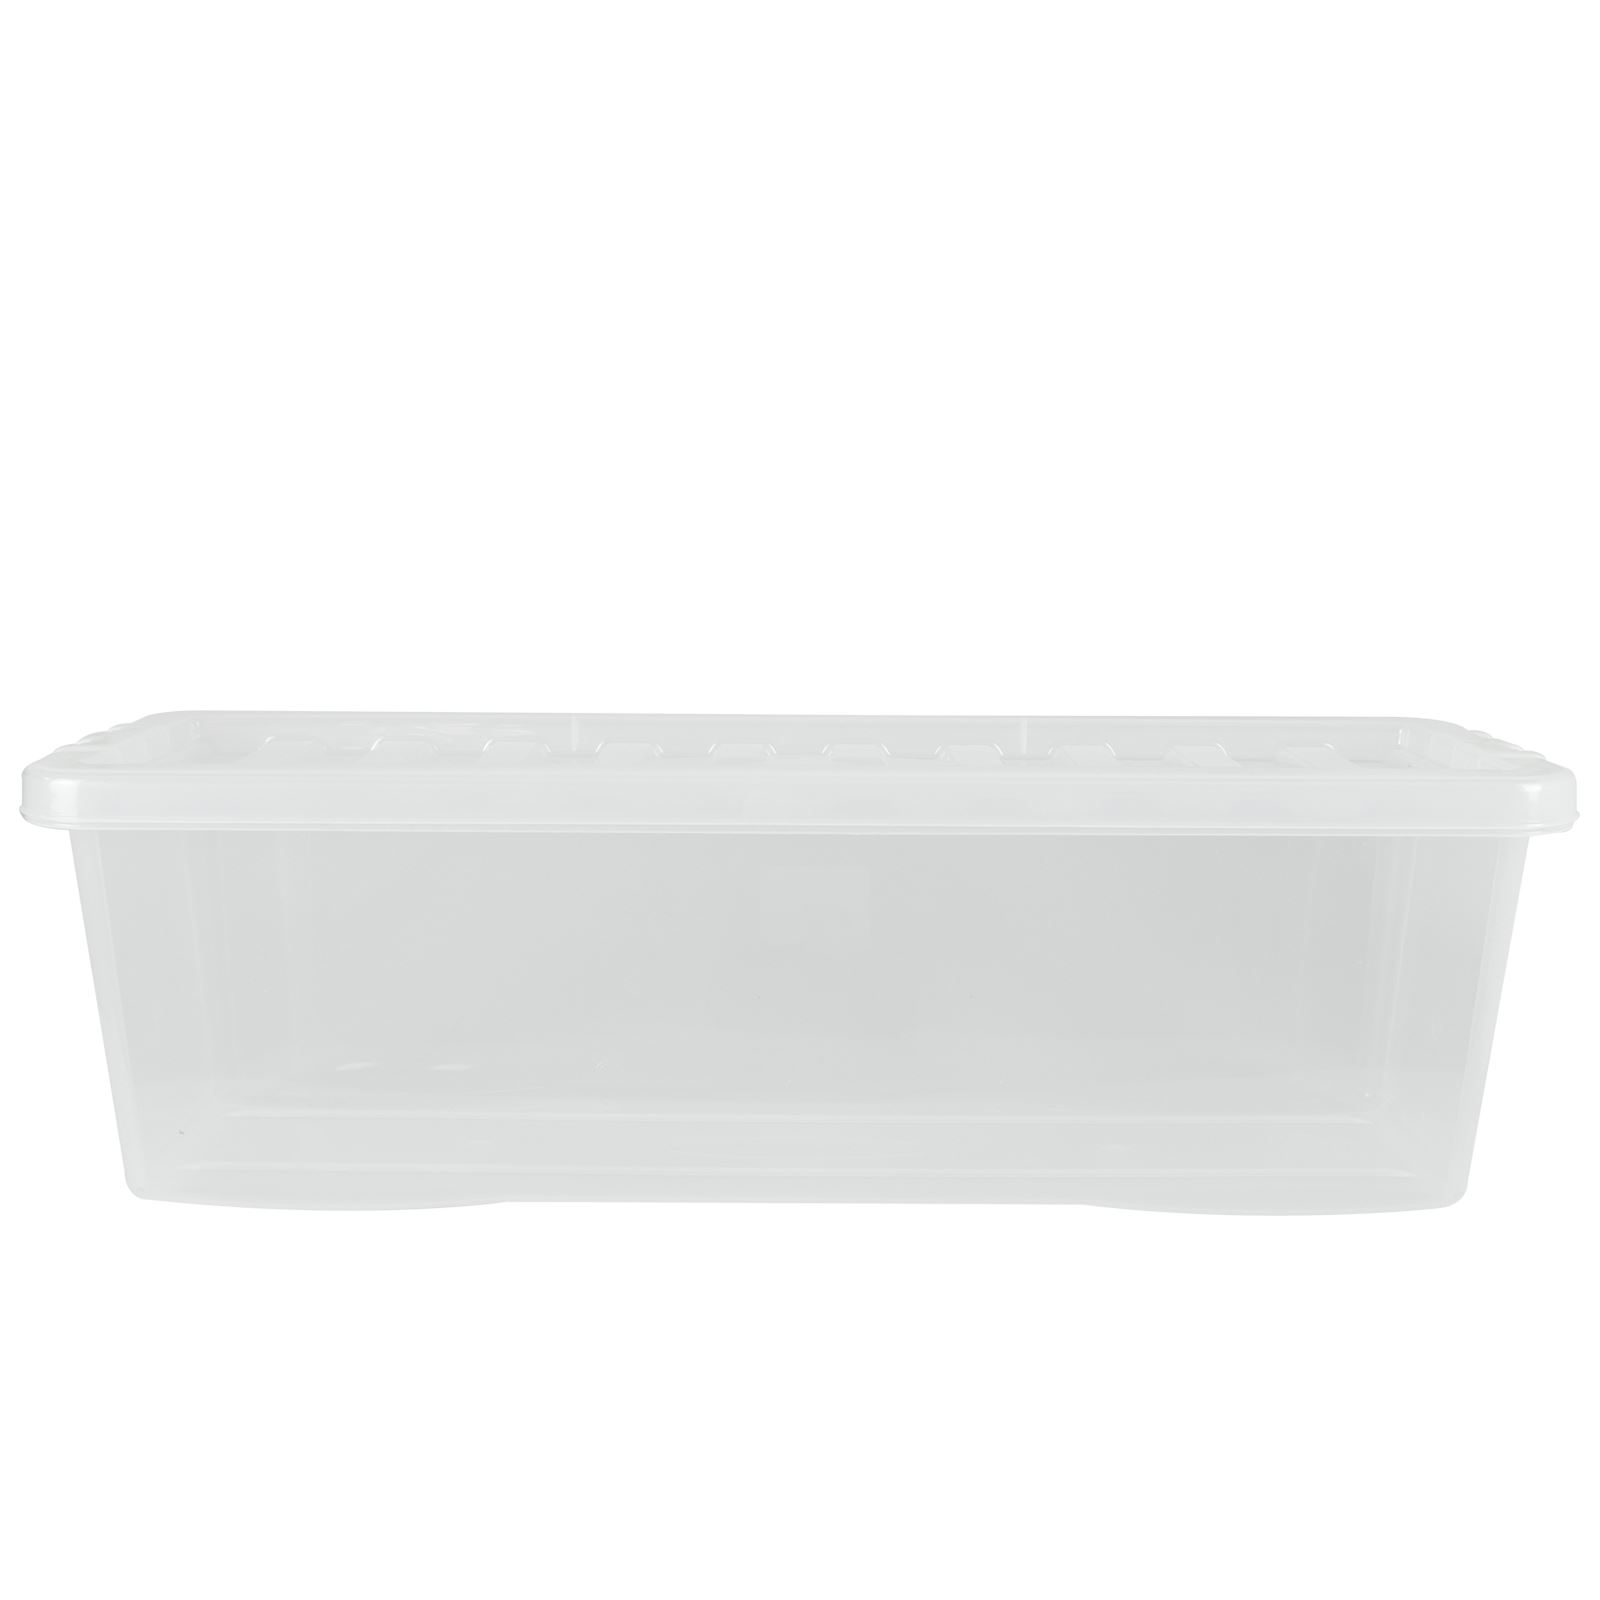 Wham-Crystal-Clear-Plastic-Storage-Box-Secure-Clip-on-Lid-Under-Bed-Space-Save thumbnail 3